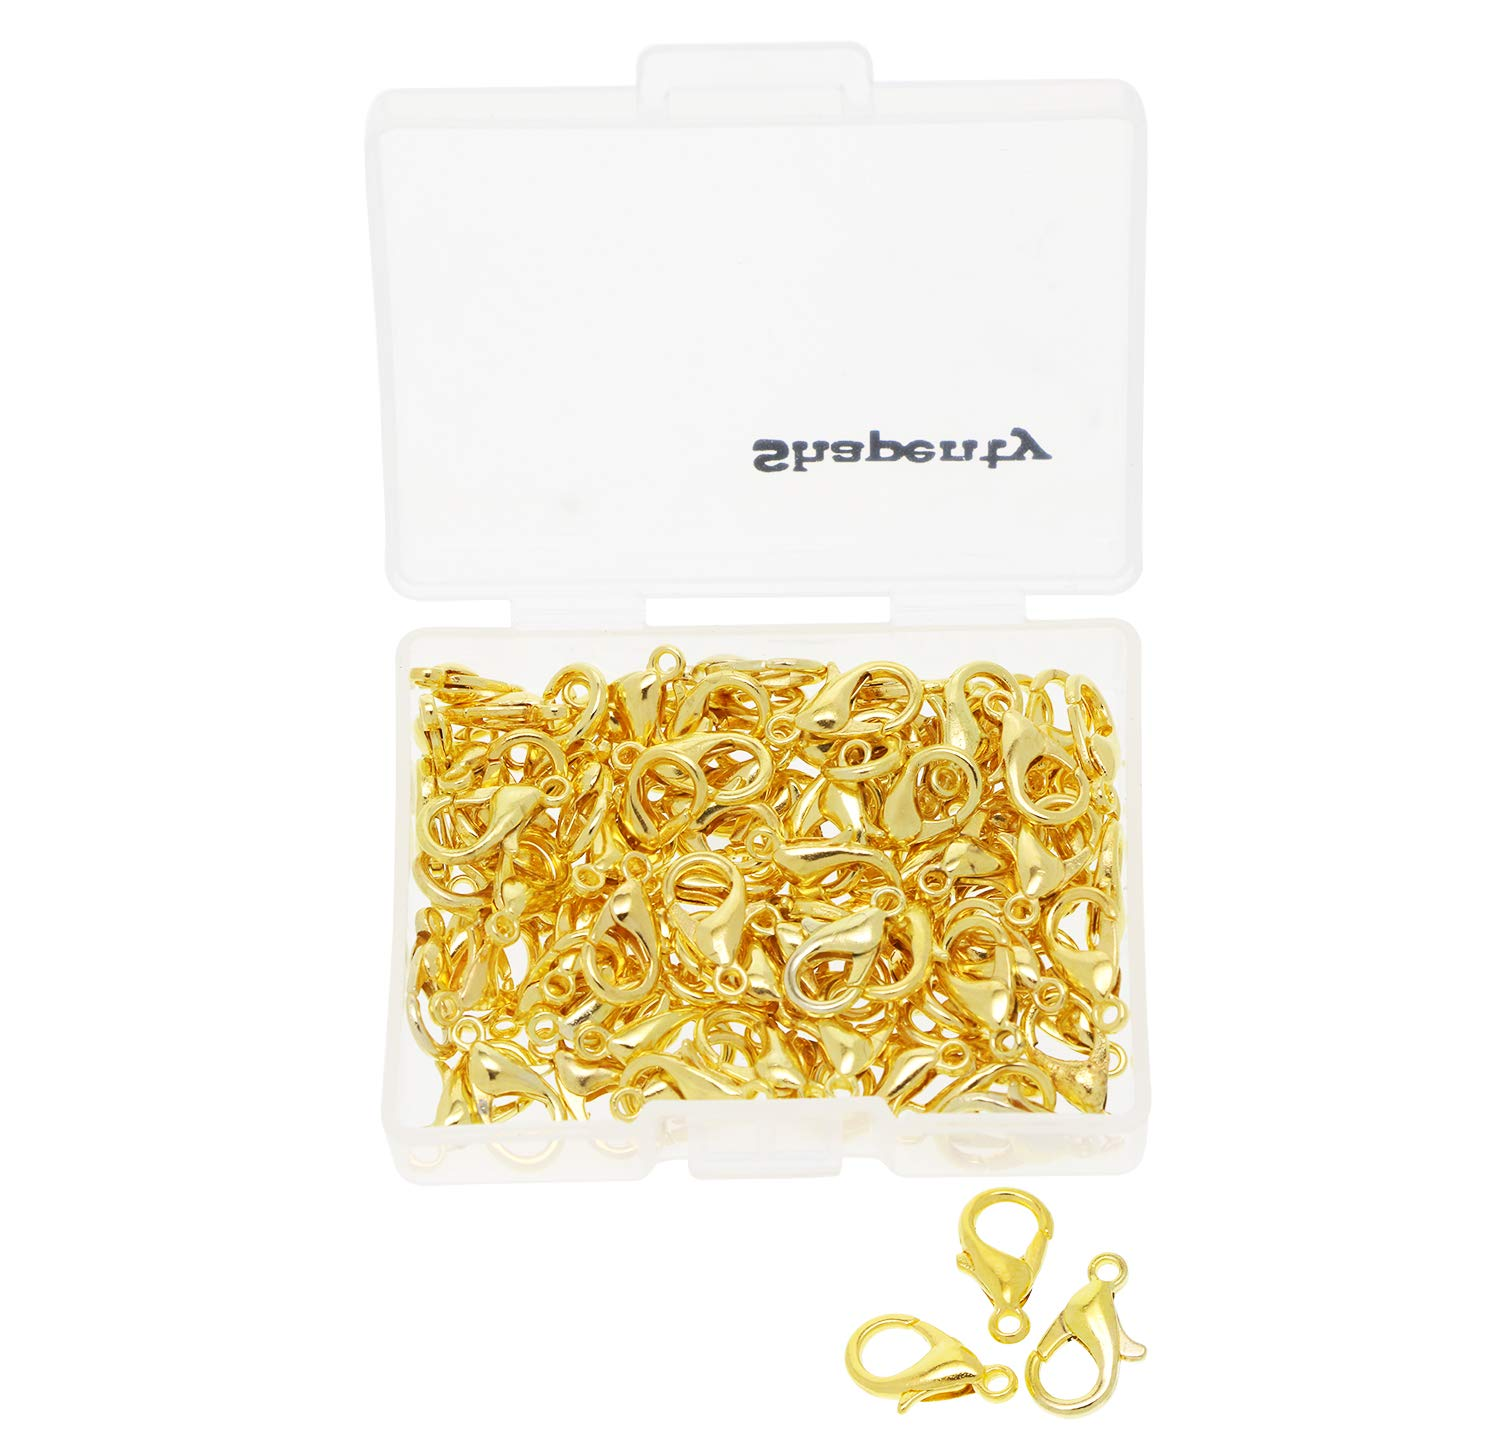 Shapenty Small Metal Alloy Lobster Claw Clasps Clip DIY Necklace Jewelry Finding Making Accessories Fastener Hook, 12mmx6mm, 100PCS (Gold)